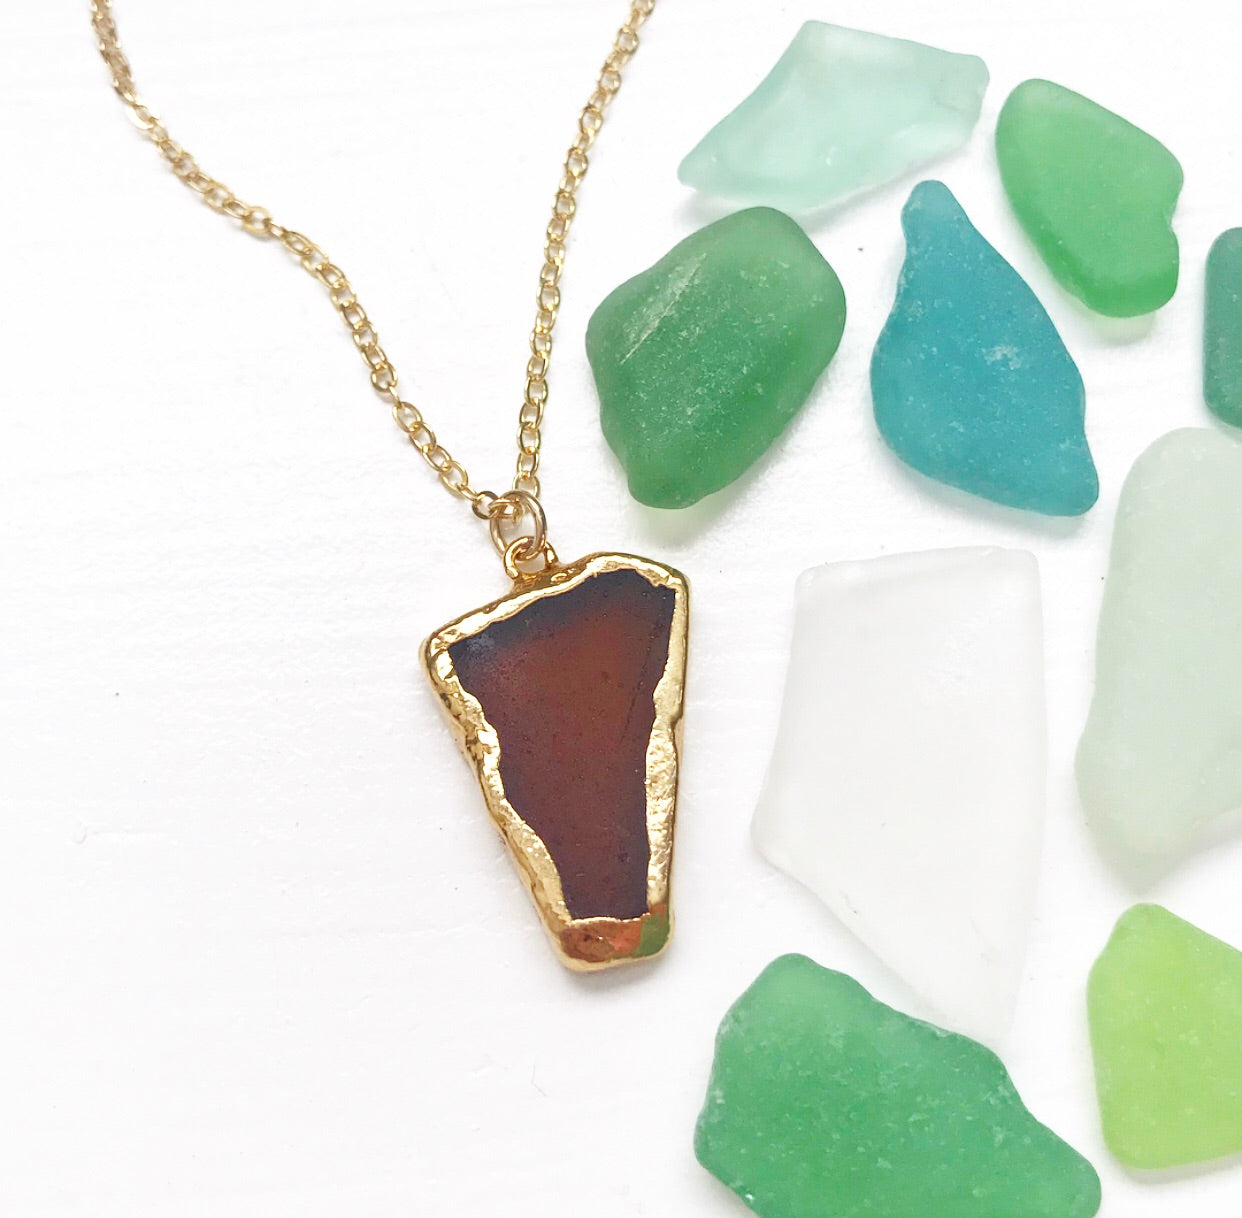 503-Seaglass Necklace